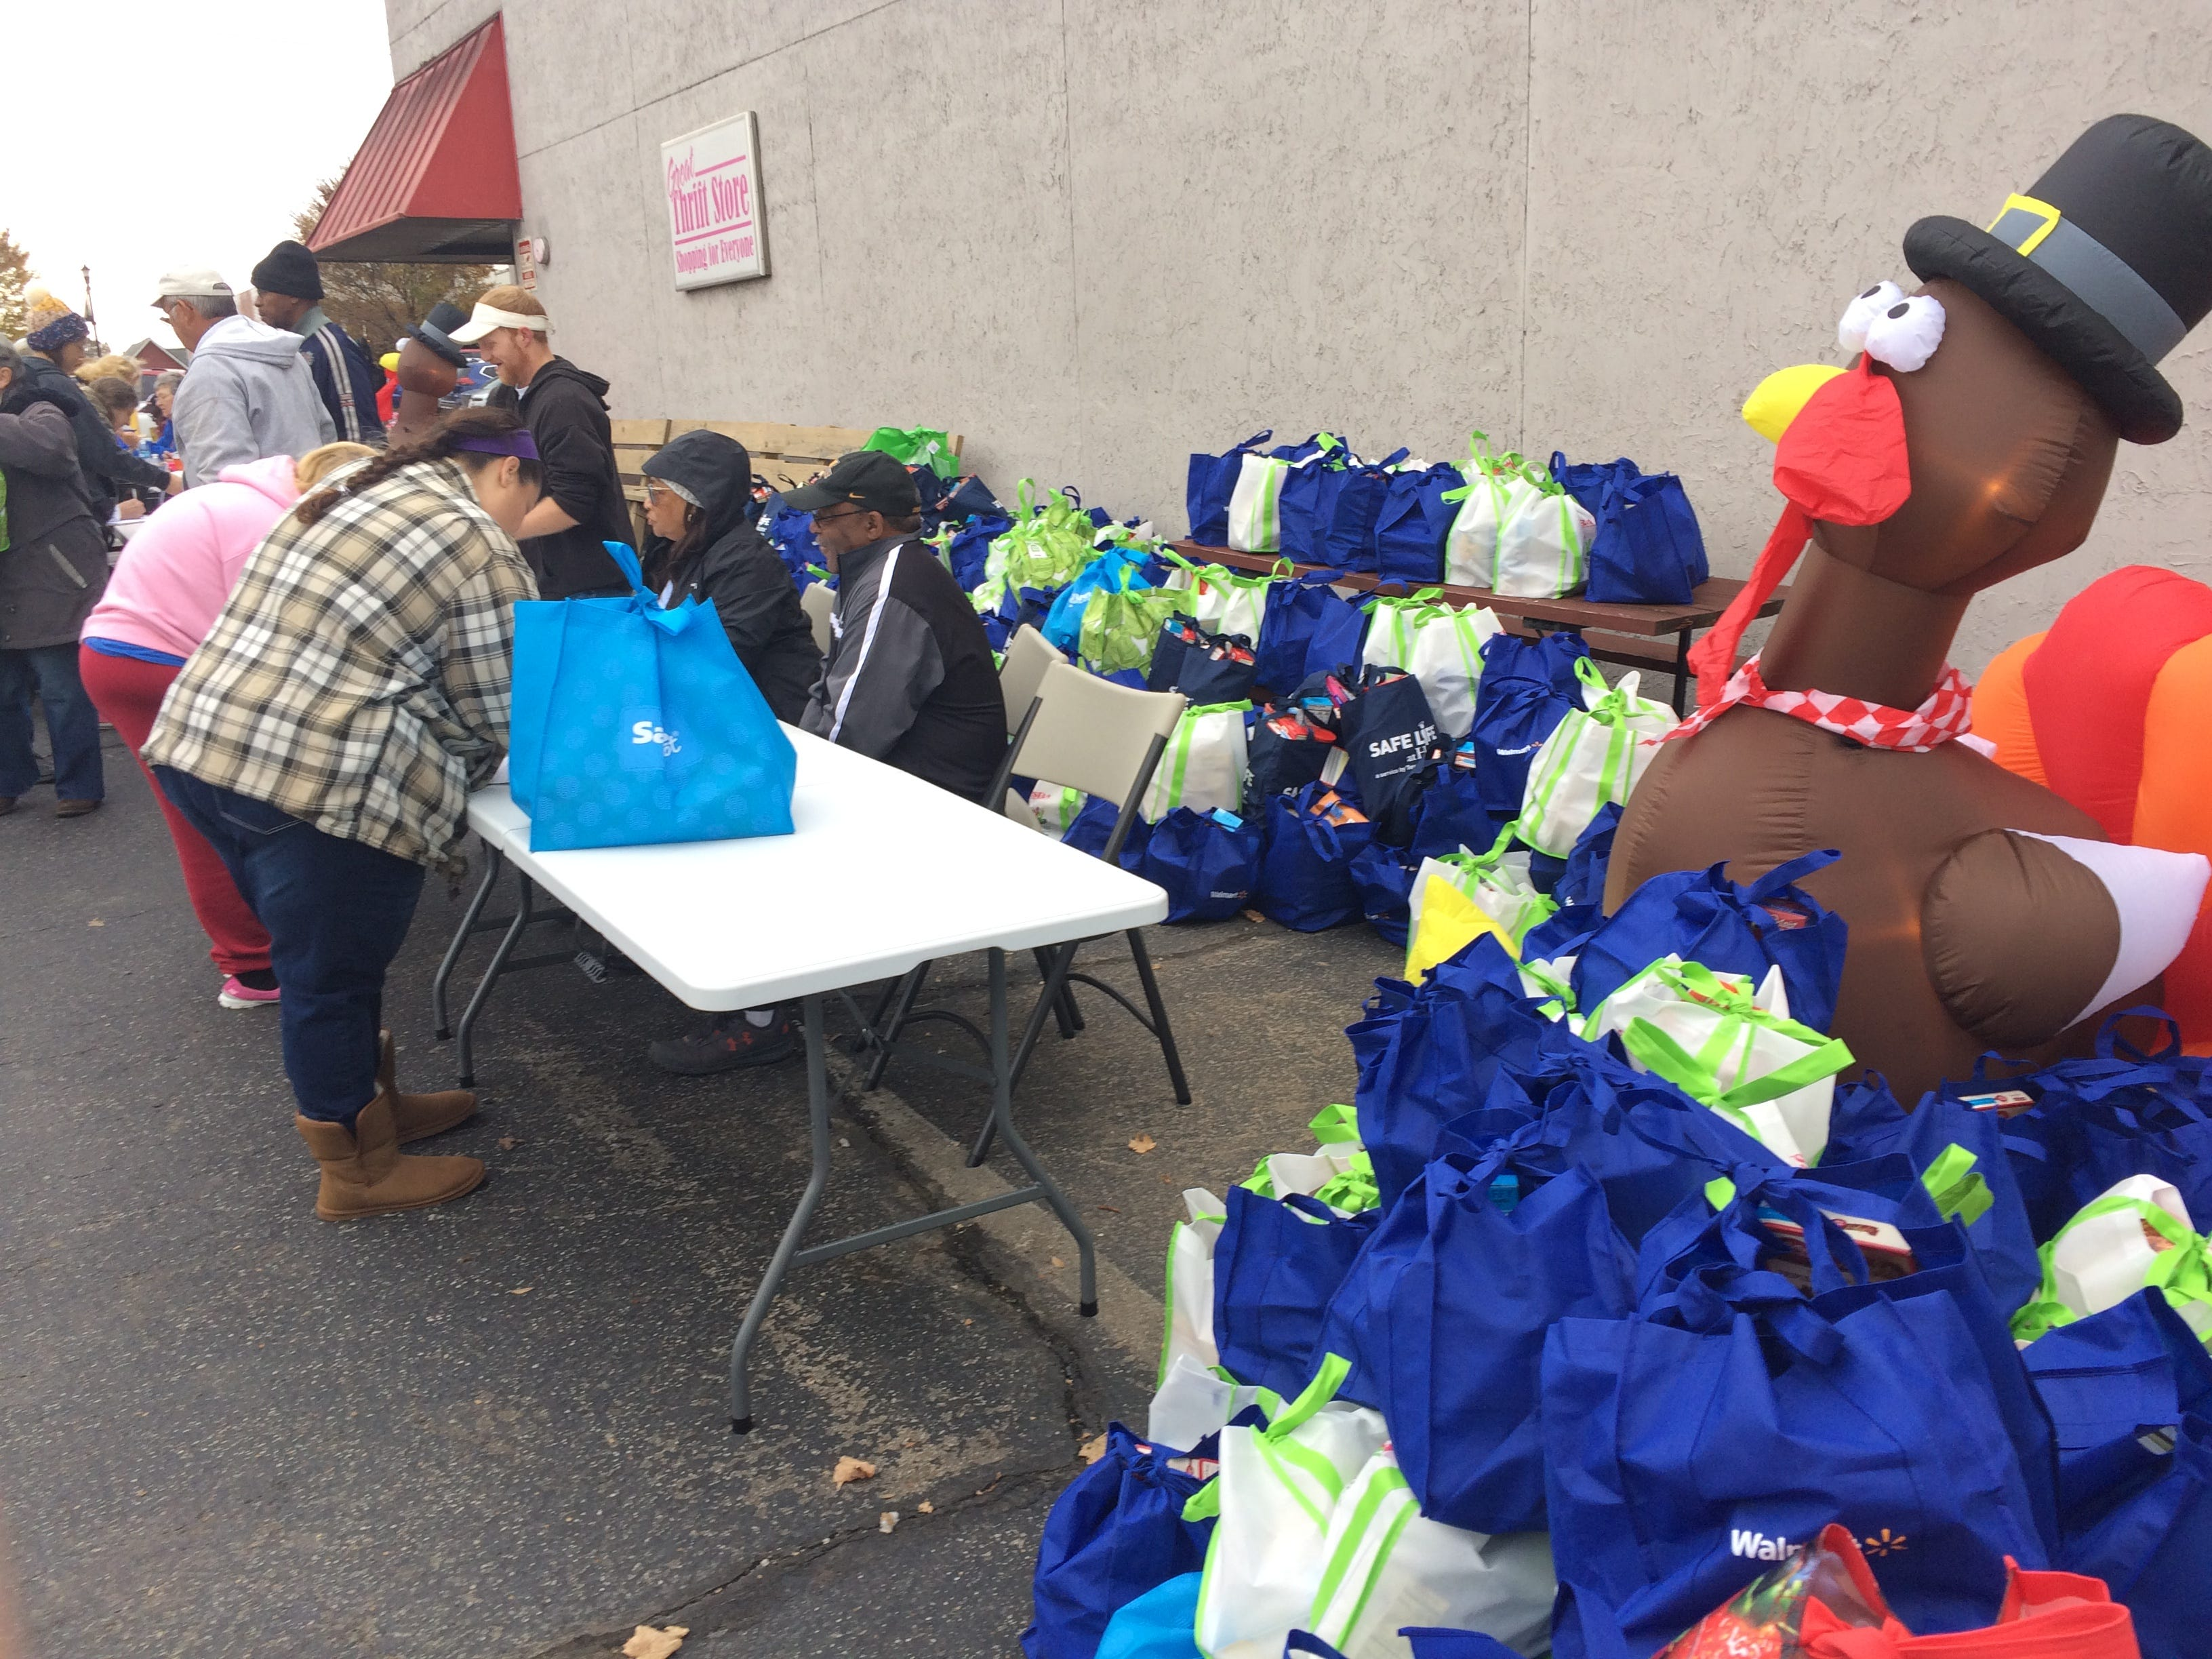 People sign up for a donated turkey and all the fixings, in the bags in back adn surrounding the inflatable turkey, at the Dickson County Help enter on Monday.